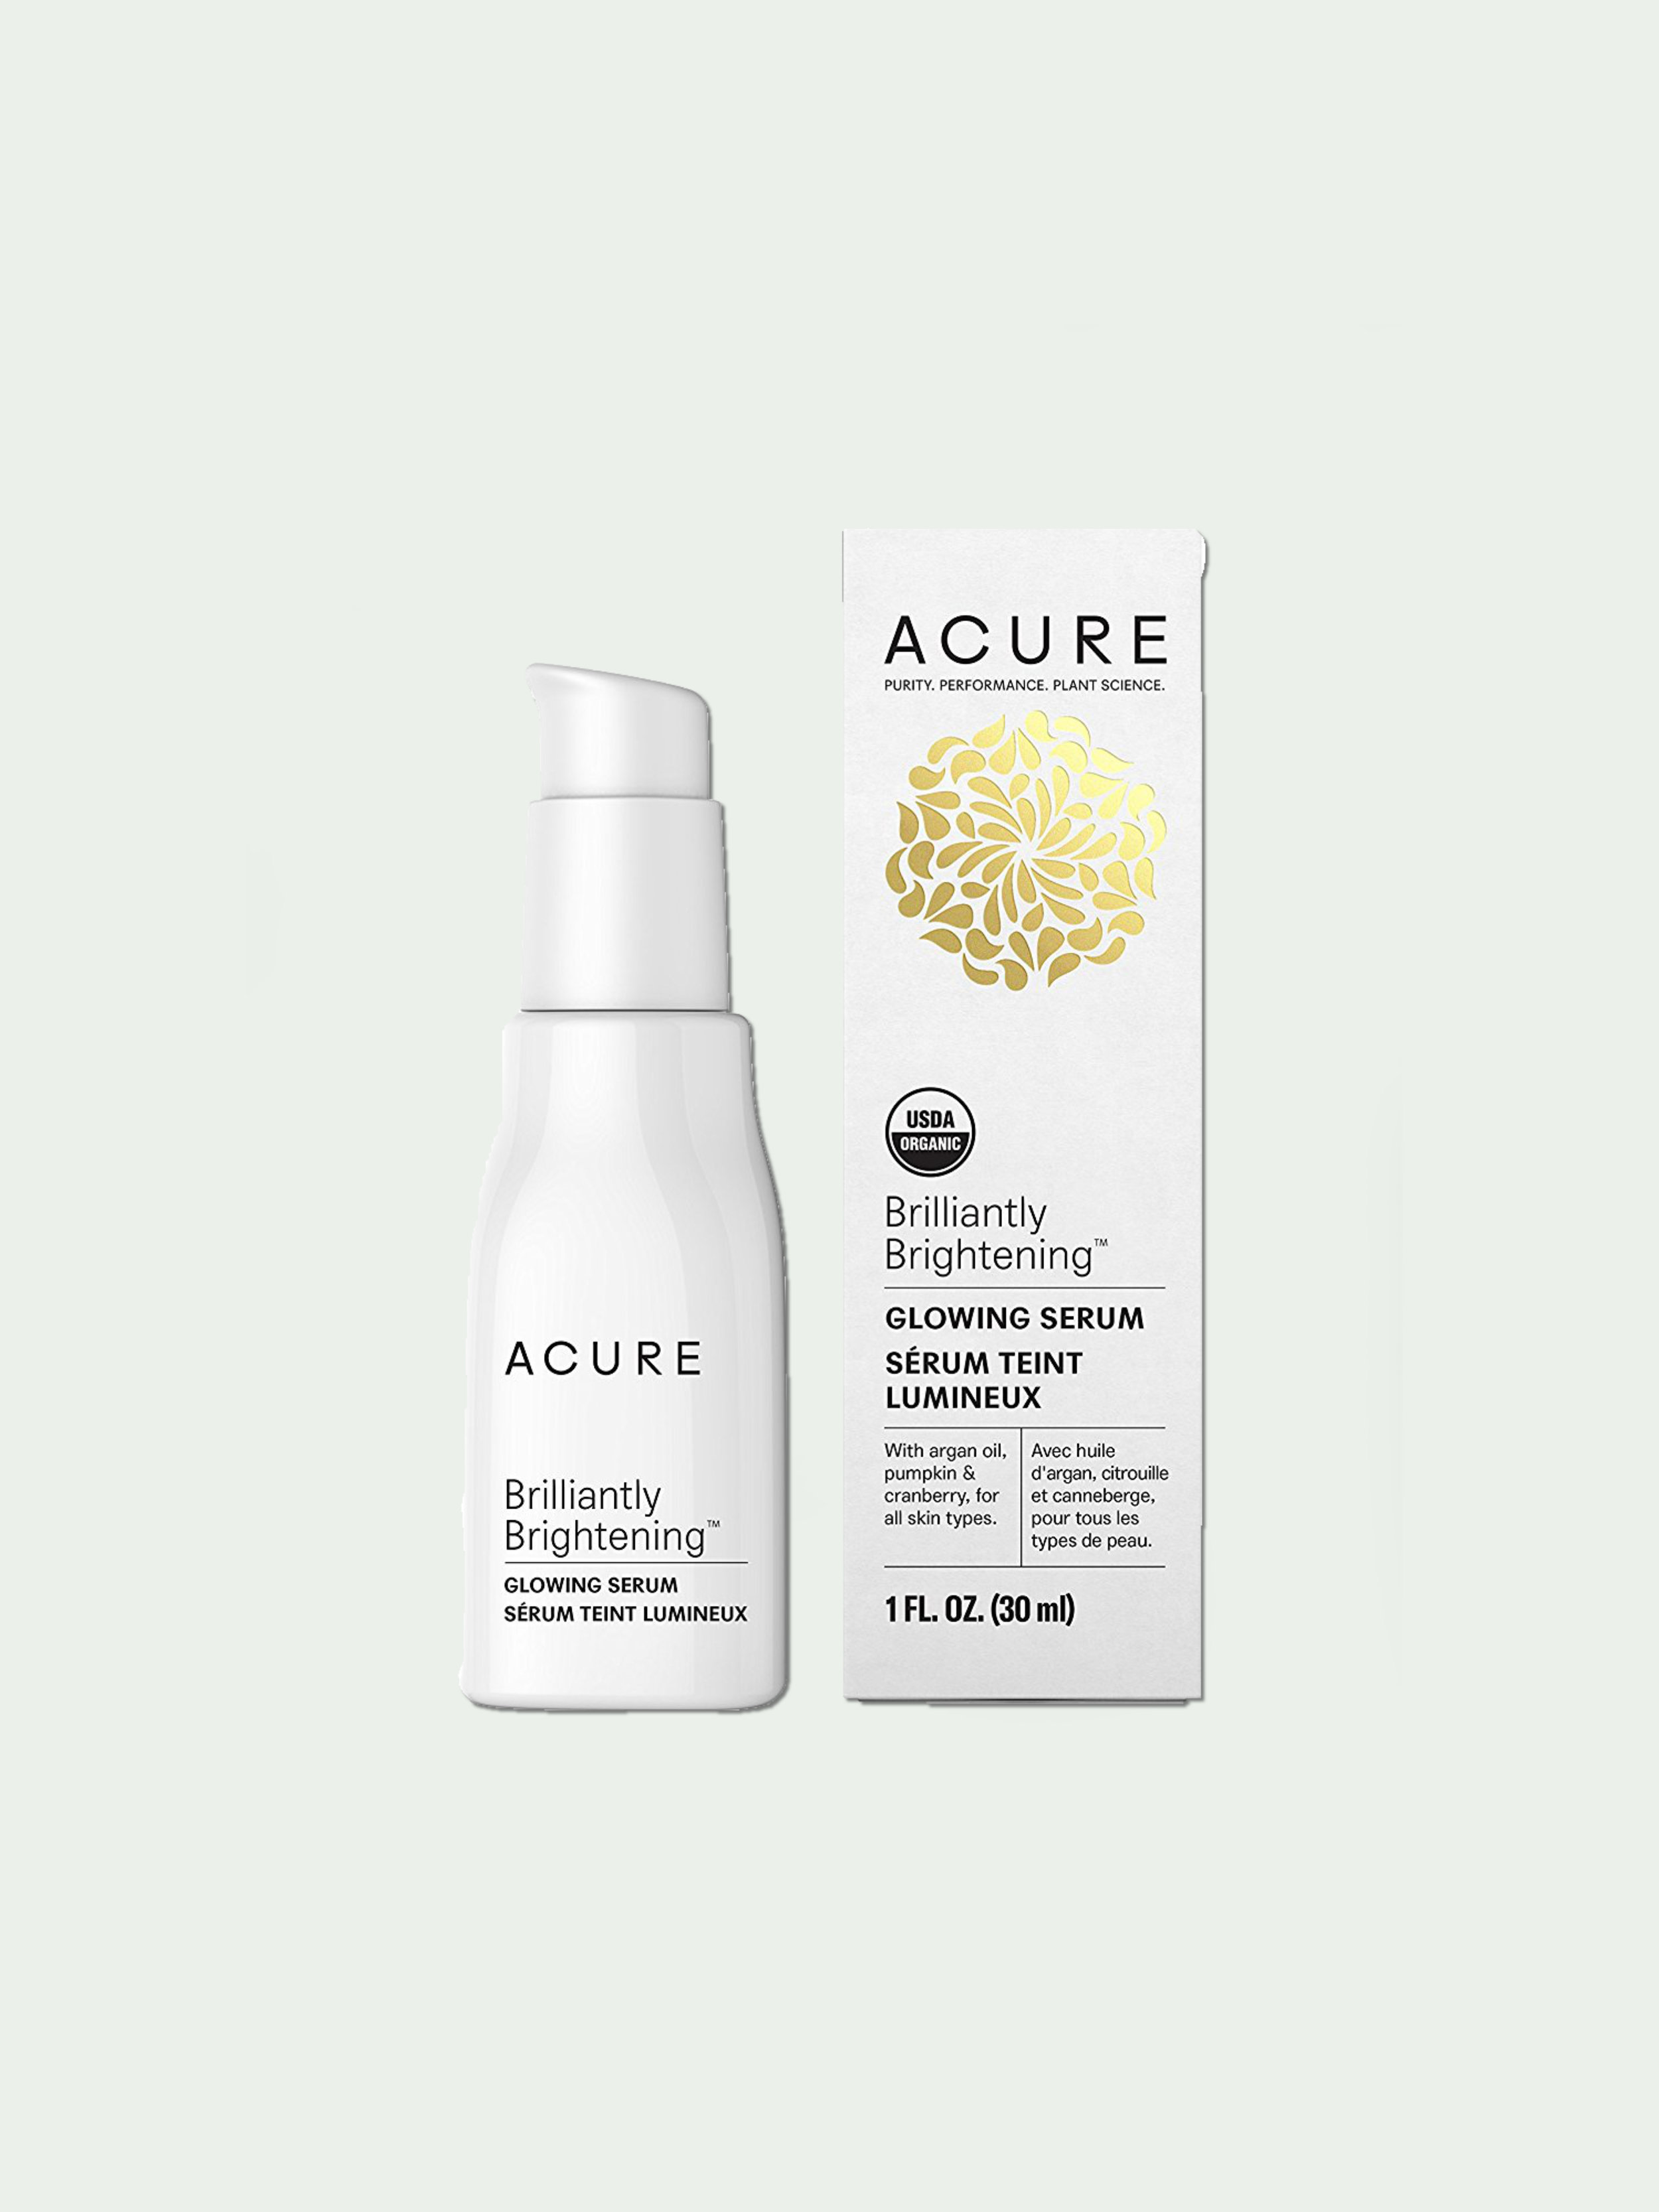 Acure Brilliantly Brightening Glowing Serum - This refreshingly-scented organic serum keeps my skin radiant and moist on dry summer days. All it takes is one little pump to moisten my naturally dry face! I have been using Acure's skin products on my face for a couple years and absolutely love that their products are organic, vegan, paraben, pthalate, and sulfate-free. This serum contains argan and borage oils which help to restore moisture — perfect for hot and dry summer days if you ask me!